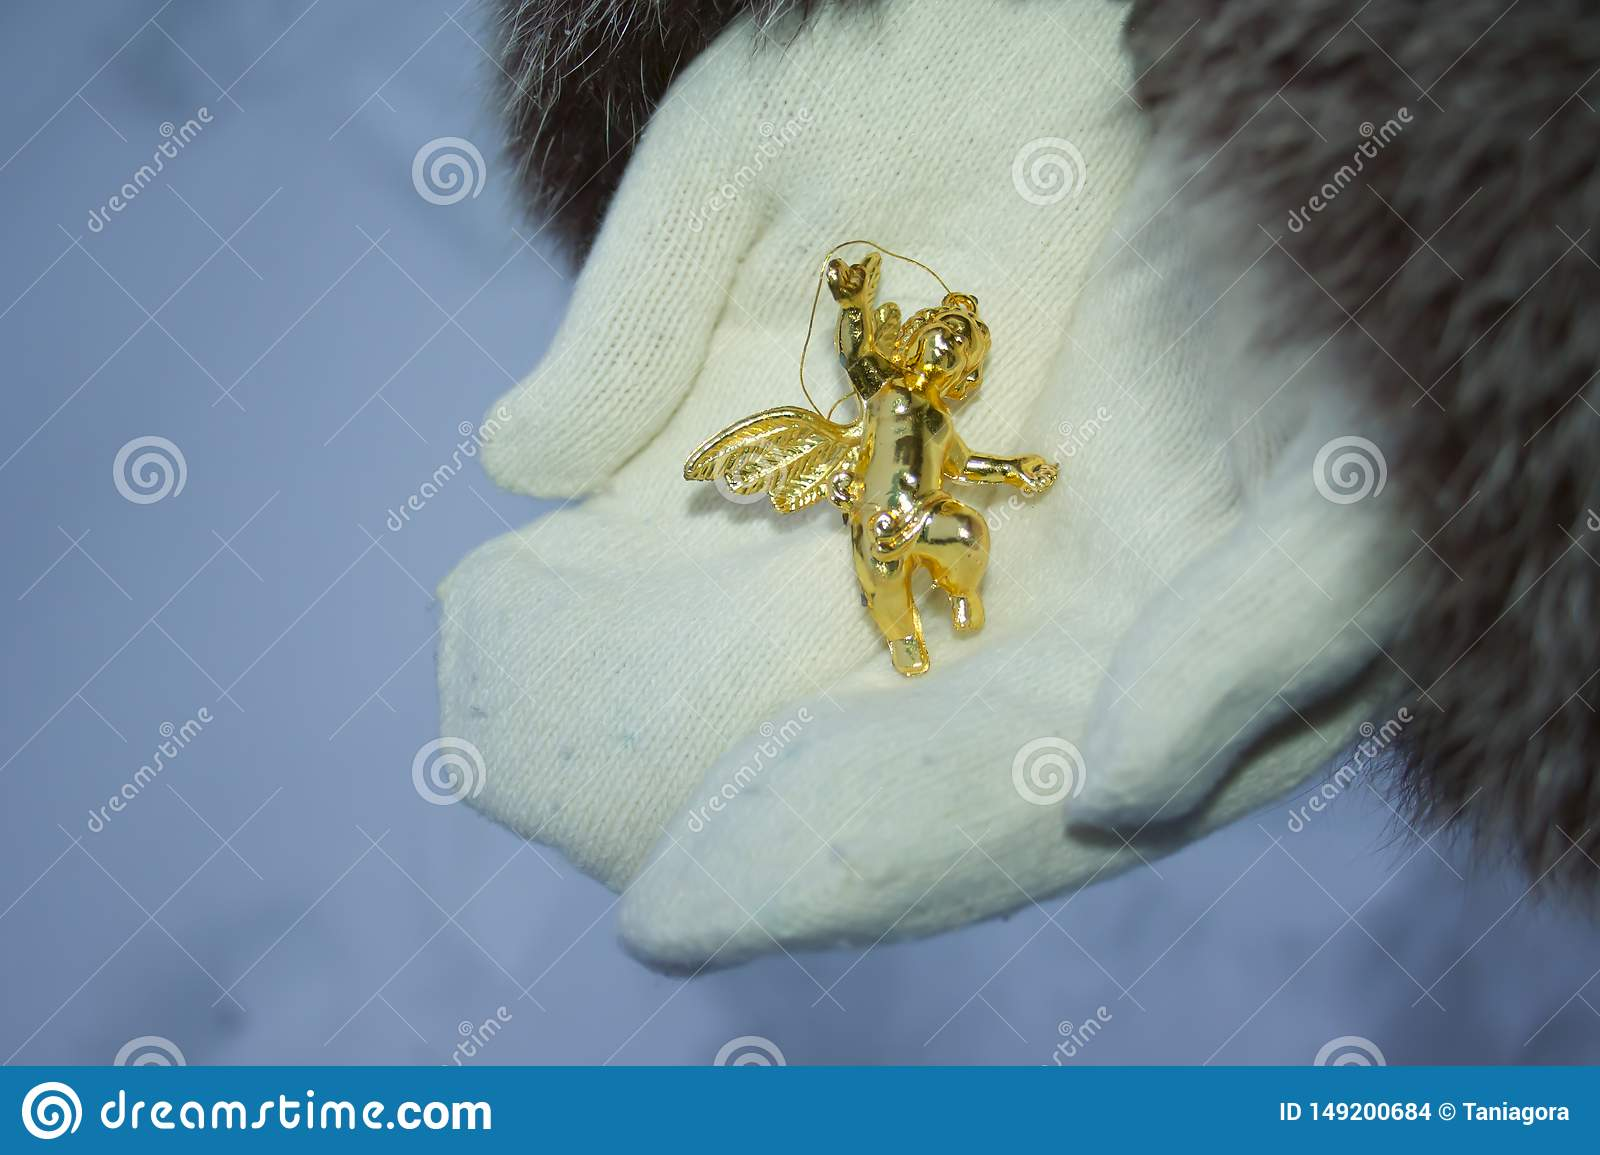 Glittering angel in mittens. Idea of merry and happy new